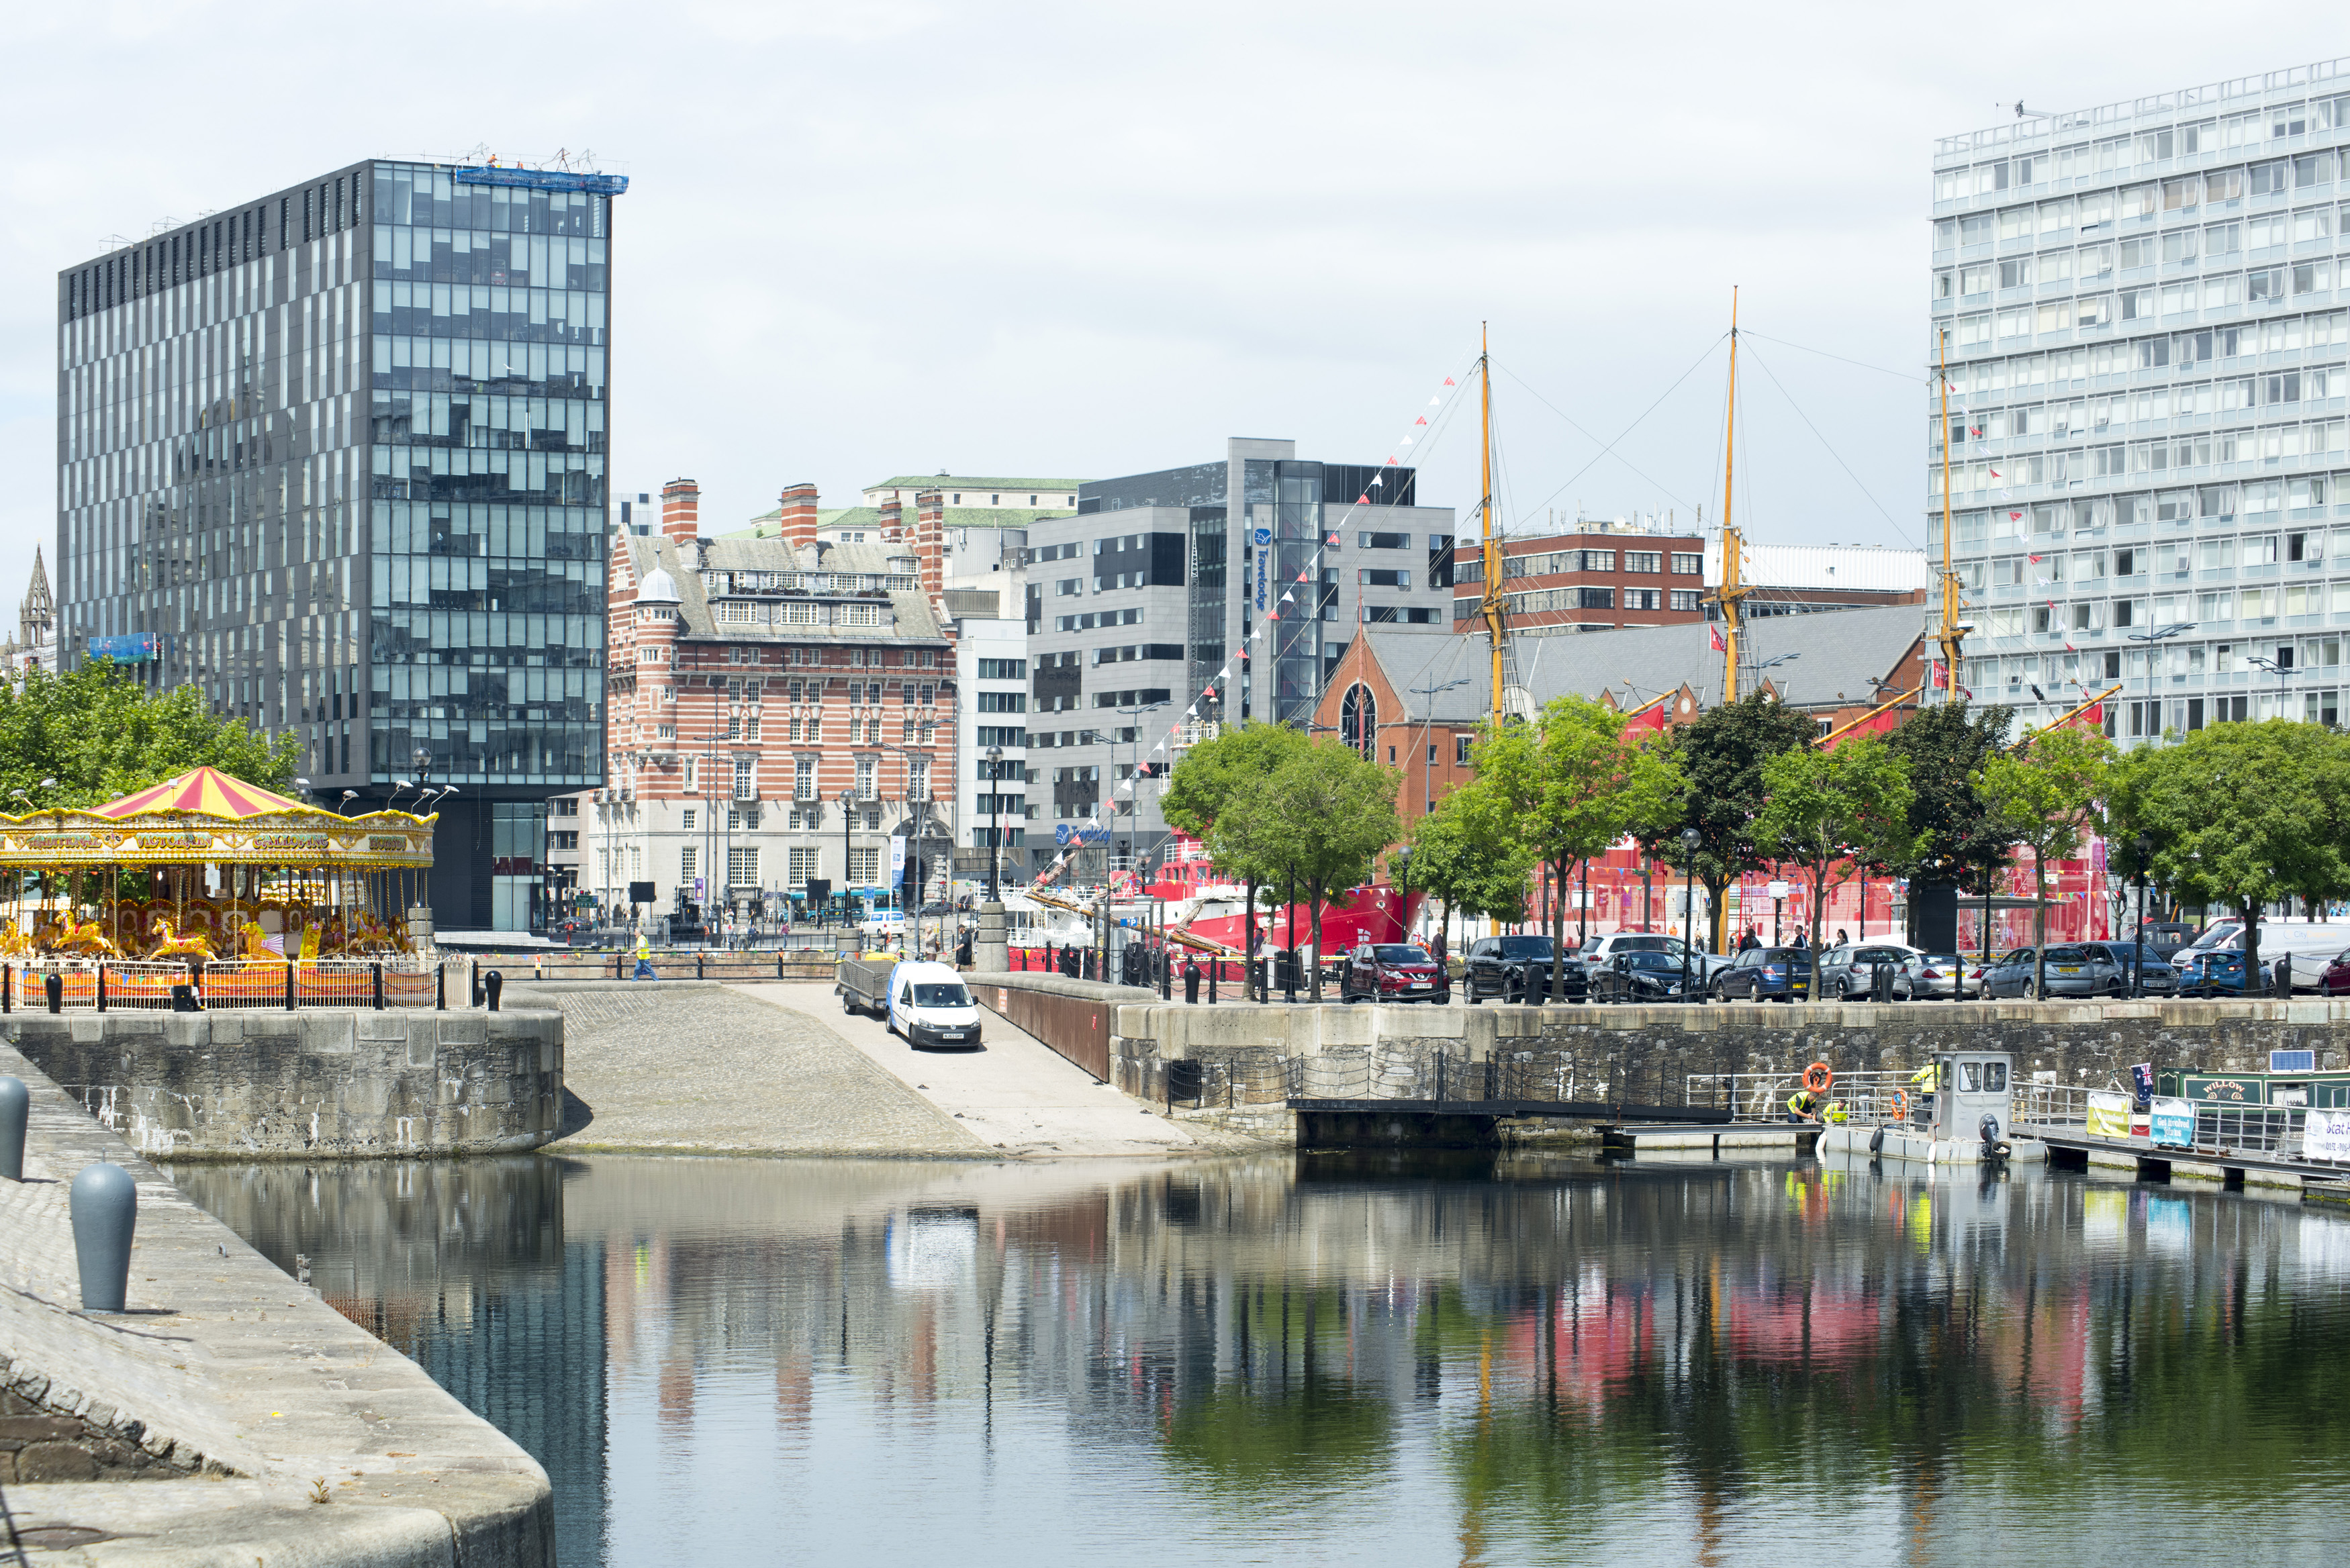 View of merri-go-round and dock on waterfront at Liverpool in the United Kingdom